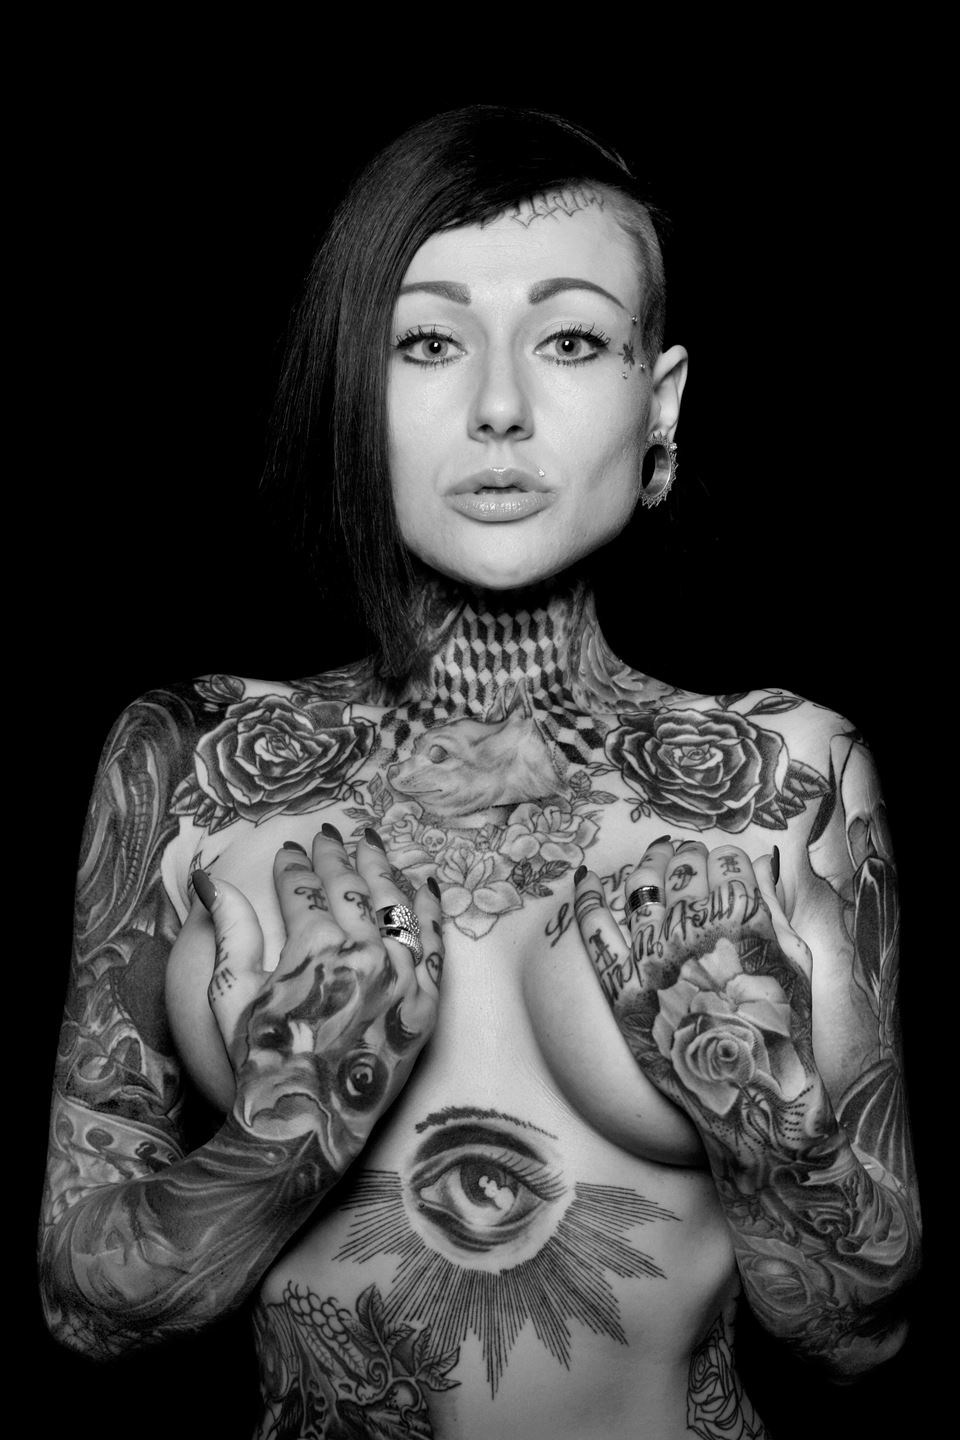 Photo by Benoit Meeus From The Book Tattoo Identity